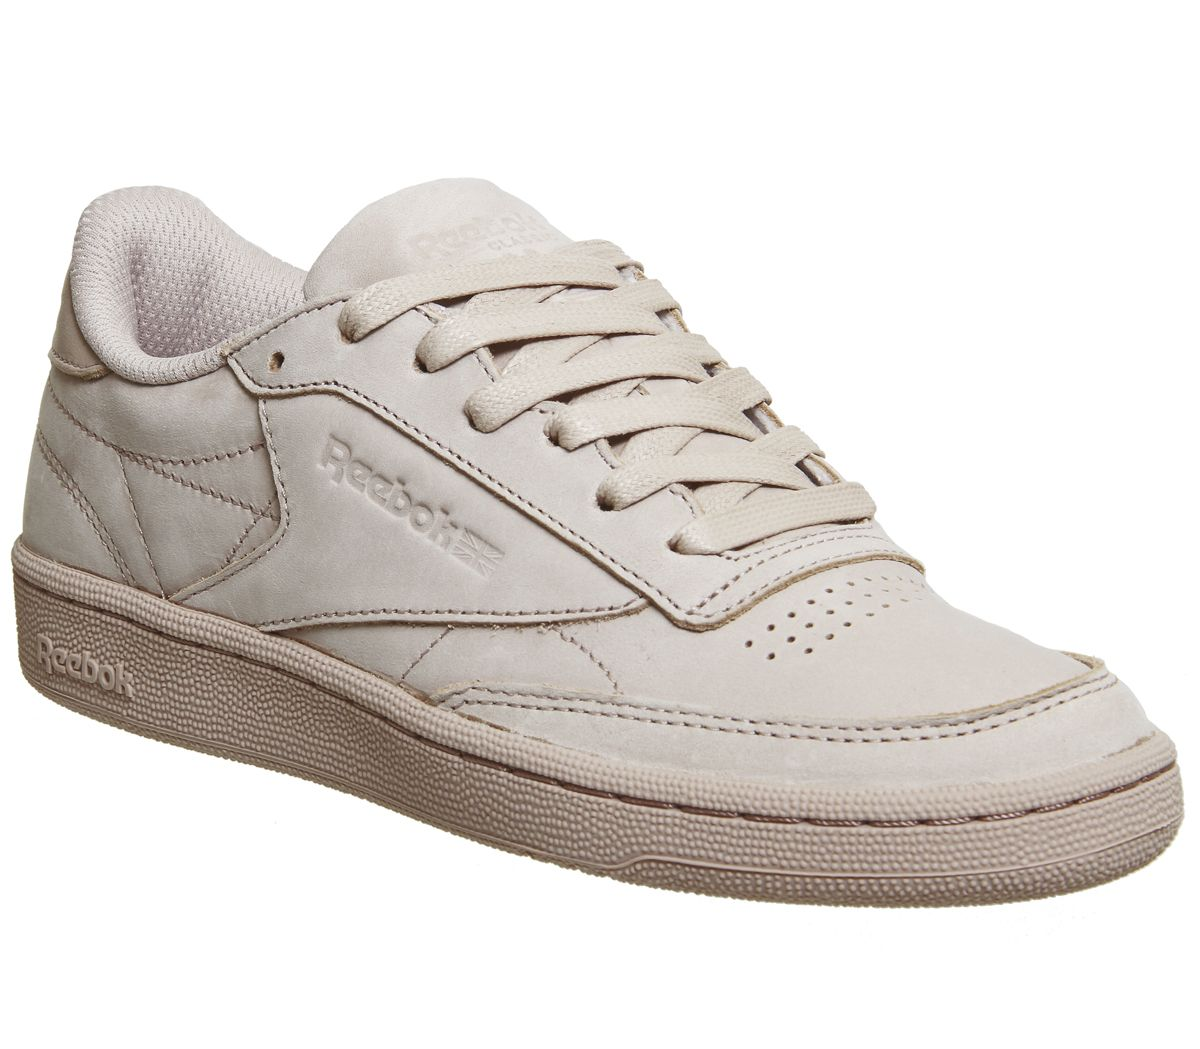 983a16289ec Reebok Club C 85 Shell Pink Gold - His trainers